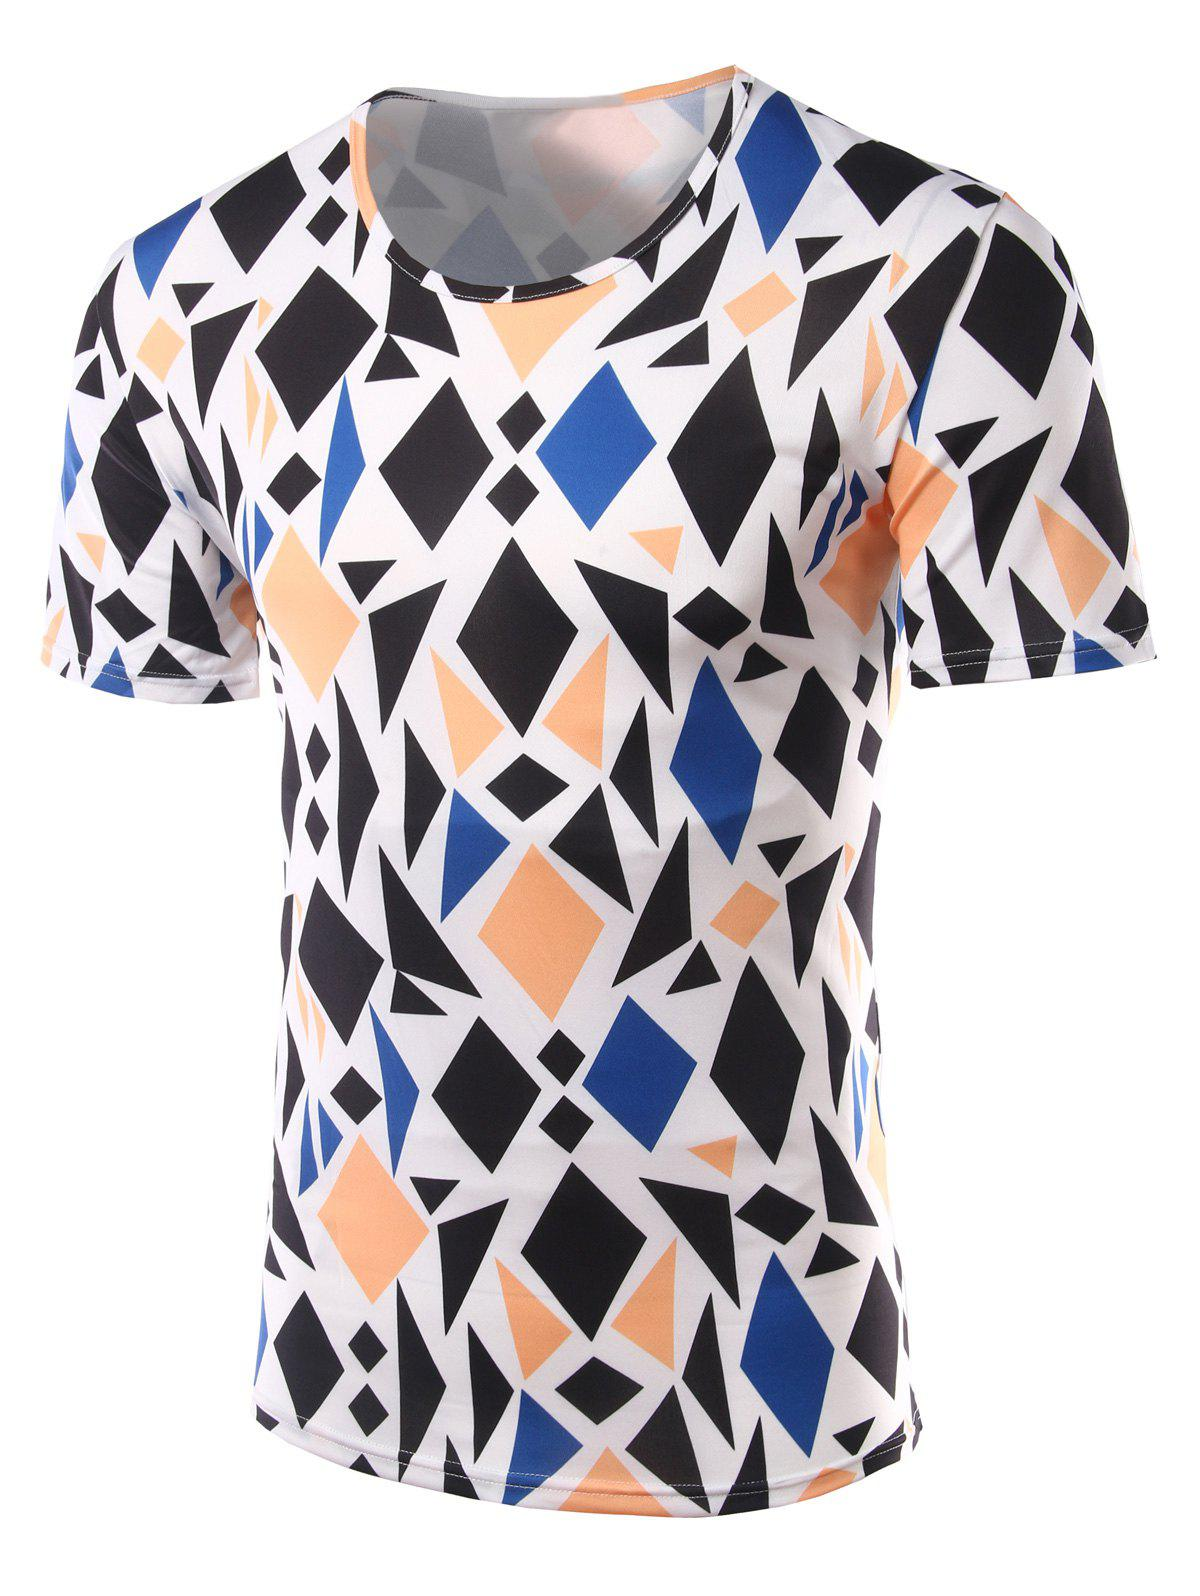 Slim Fit Geometric Figure Printed Round Collar Short Sleeves T-Shirts For Men - COLORMIX L